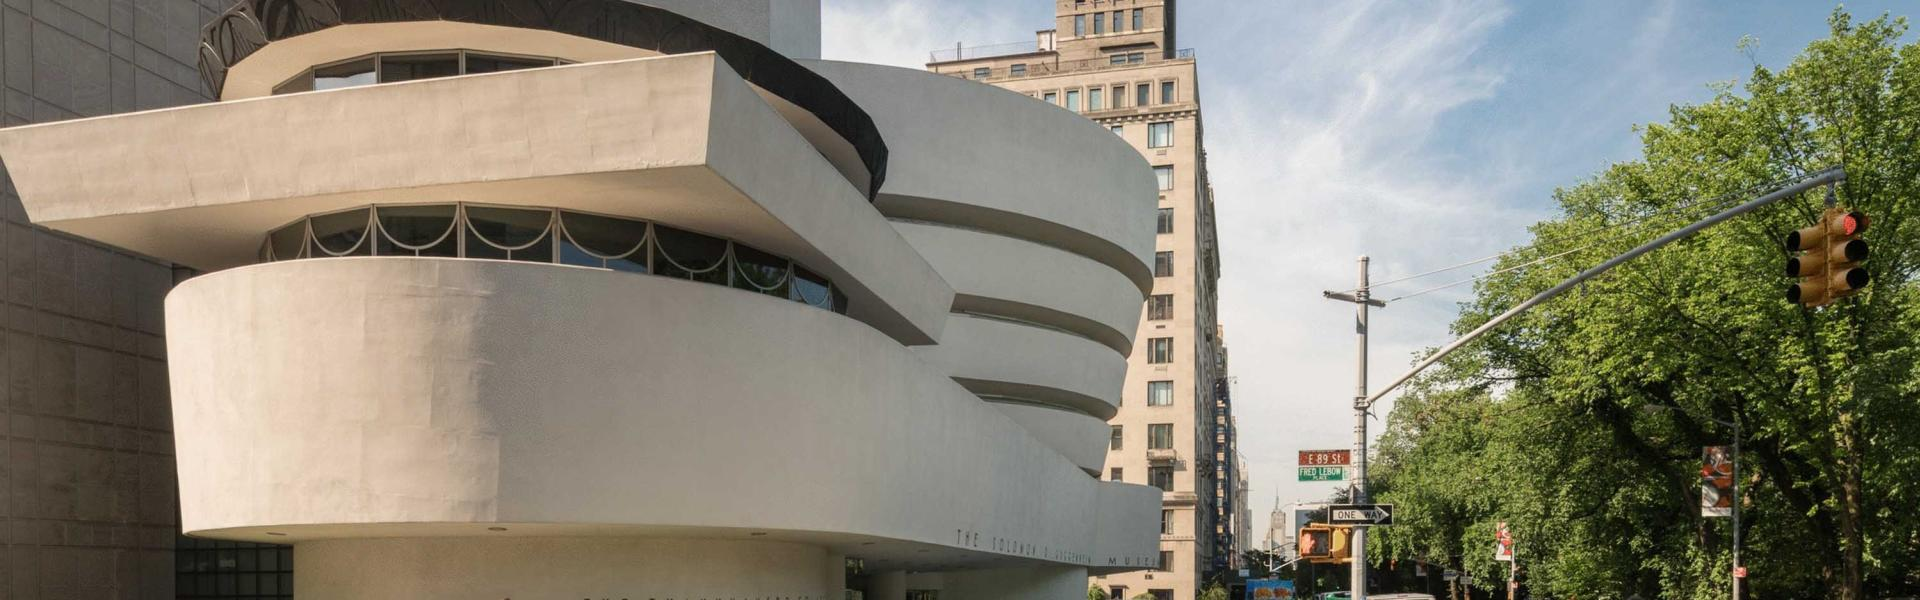 Guggenheim Museum, Upper East Side, Manhattan, NYC, photo David Heald Copyright Solomon R Guggenheim Foundation